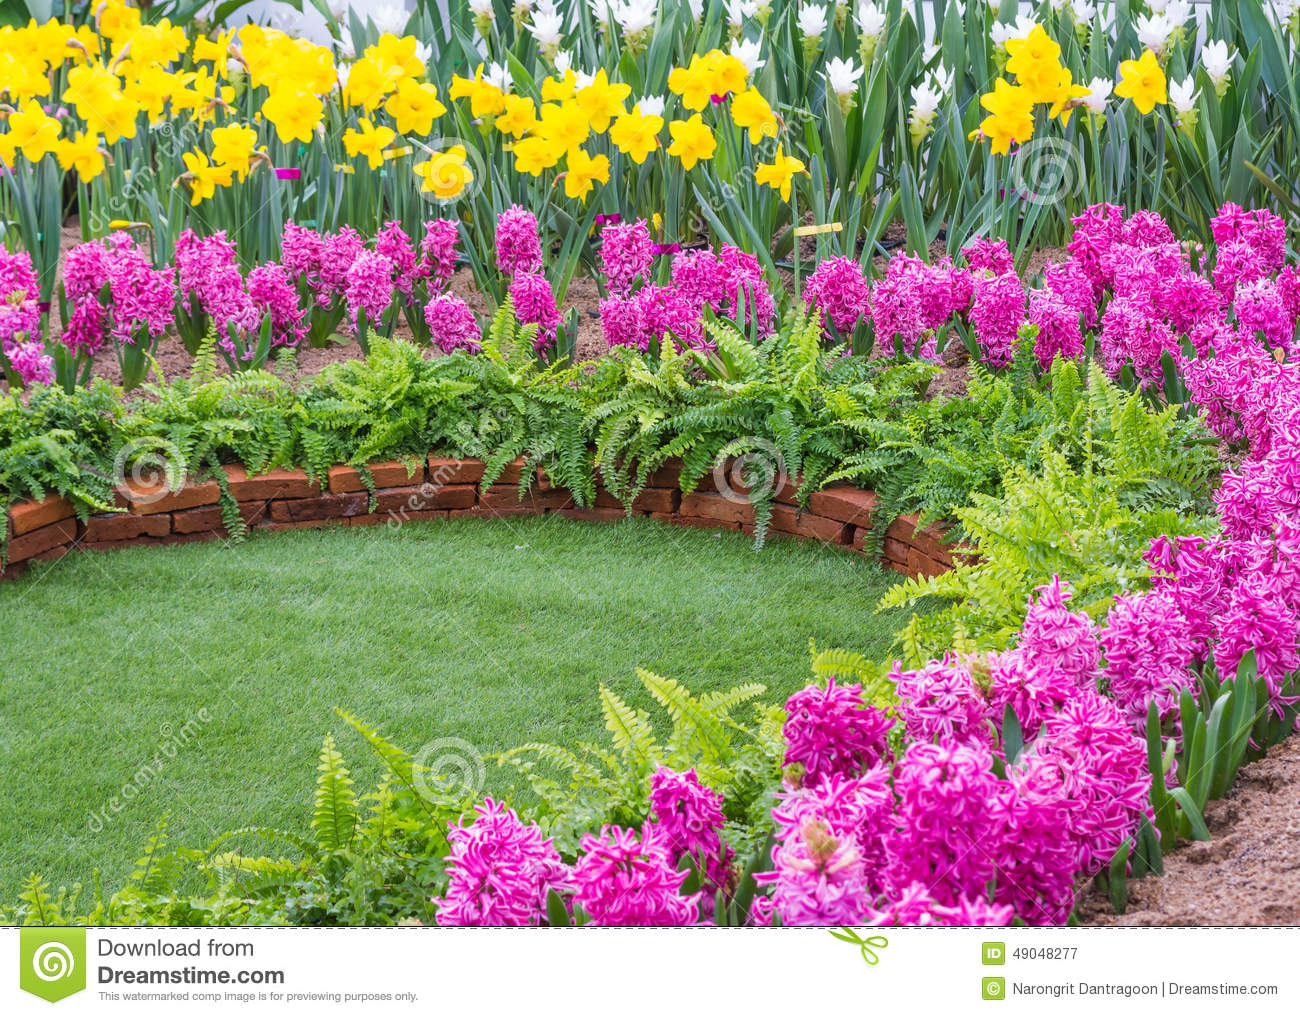 Colorful Flower In The Park. Spring Landscape. Stock Photo.